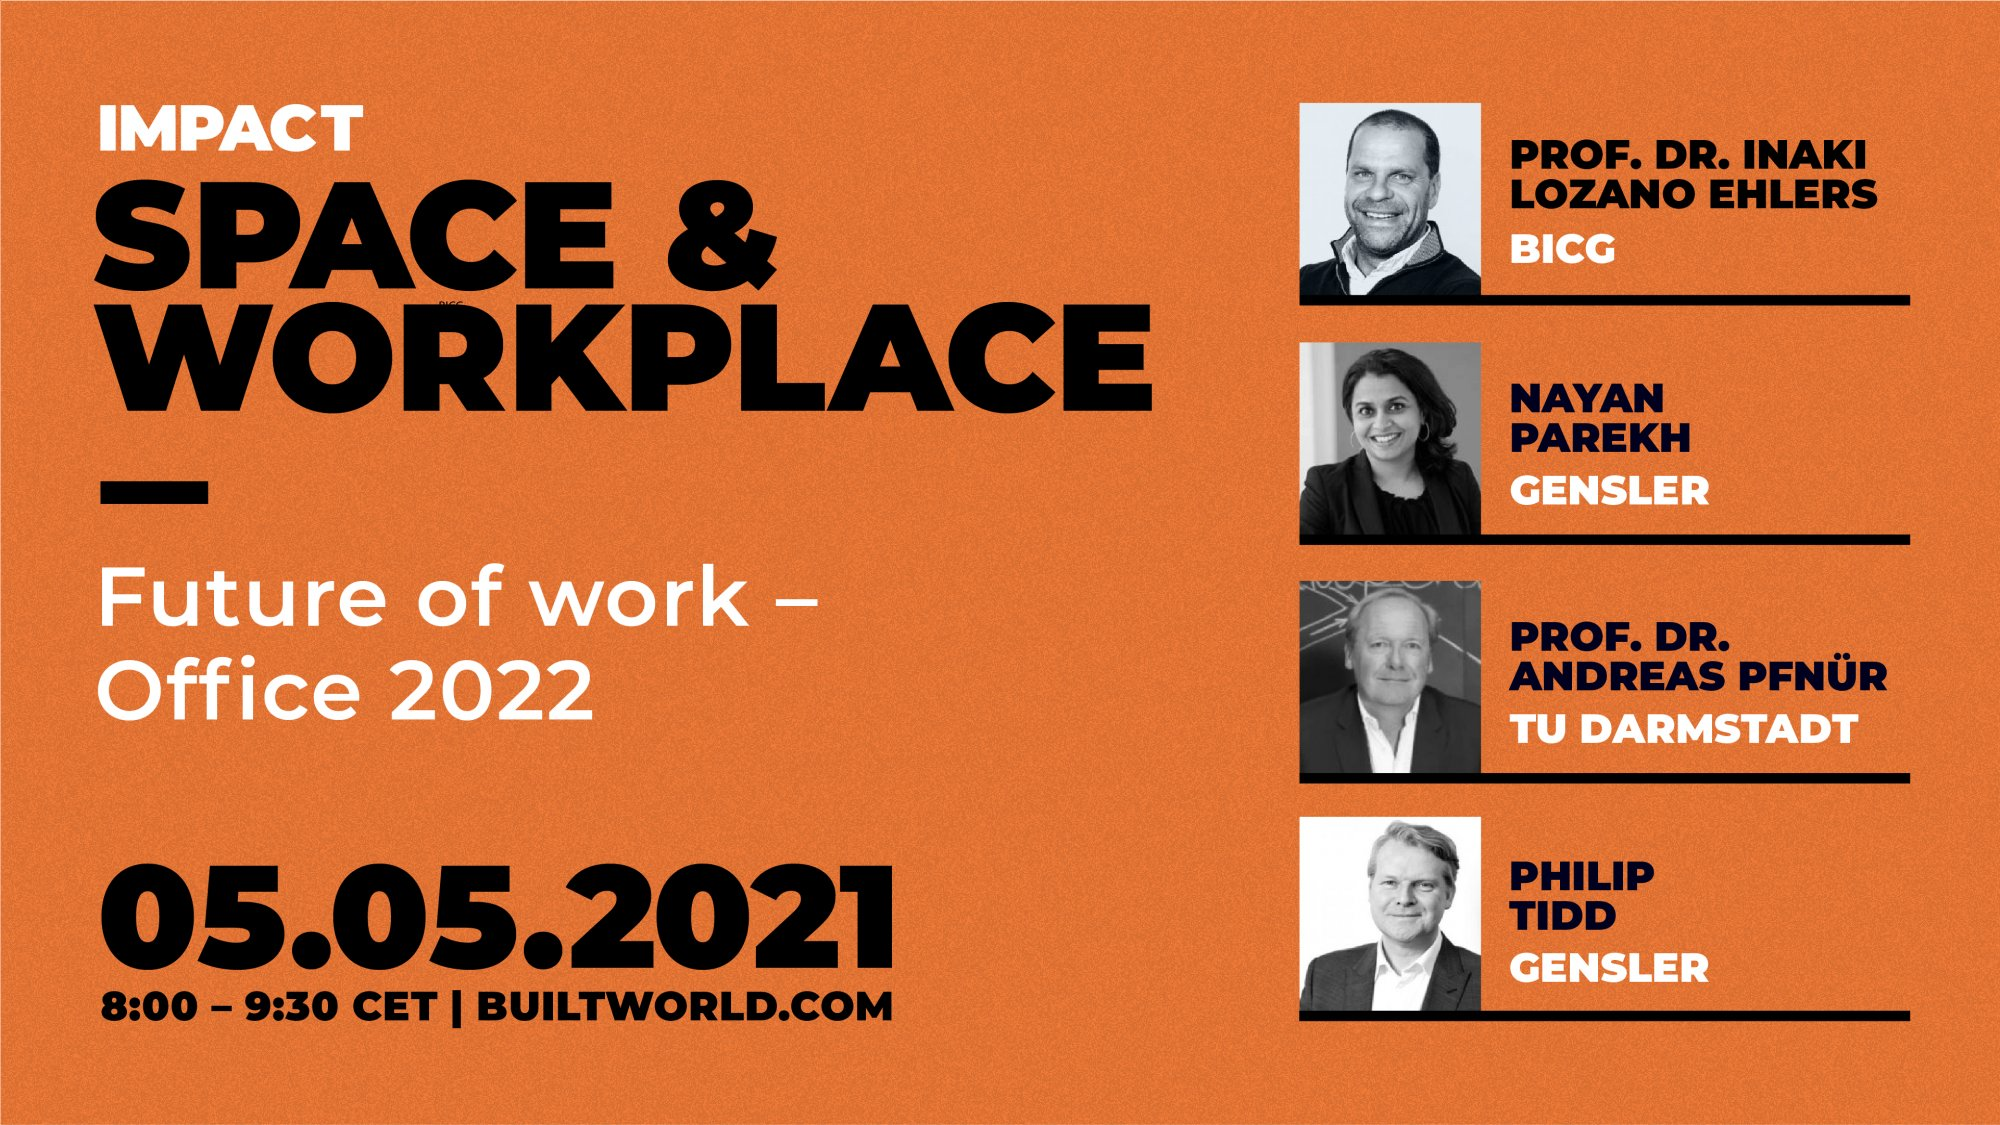 space-workplace-future-of-work-office-2022